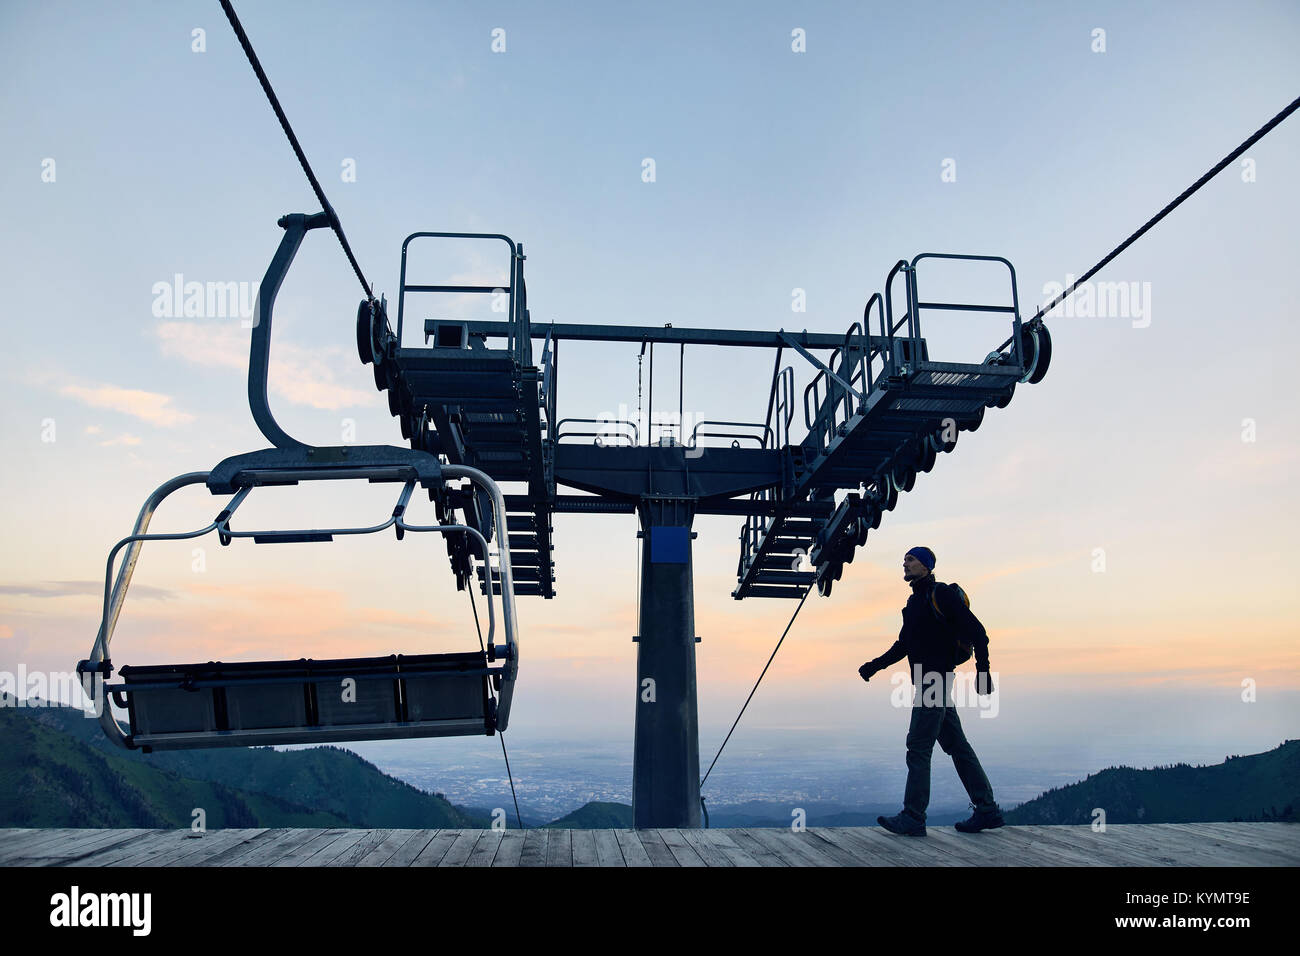 Tourist man walking at ski lift station in silhouette high in mountain ski resort at sunrise - Stock Image